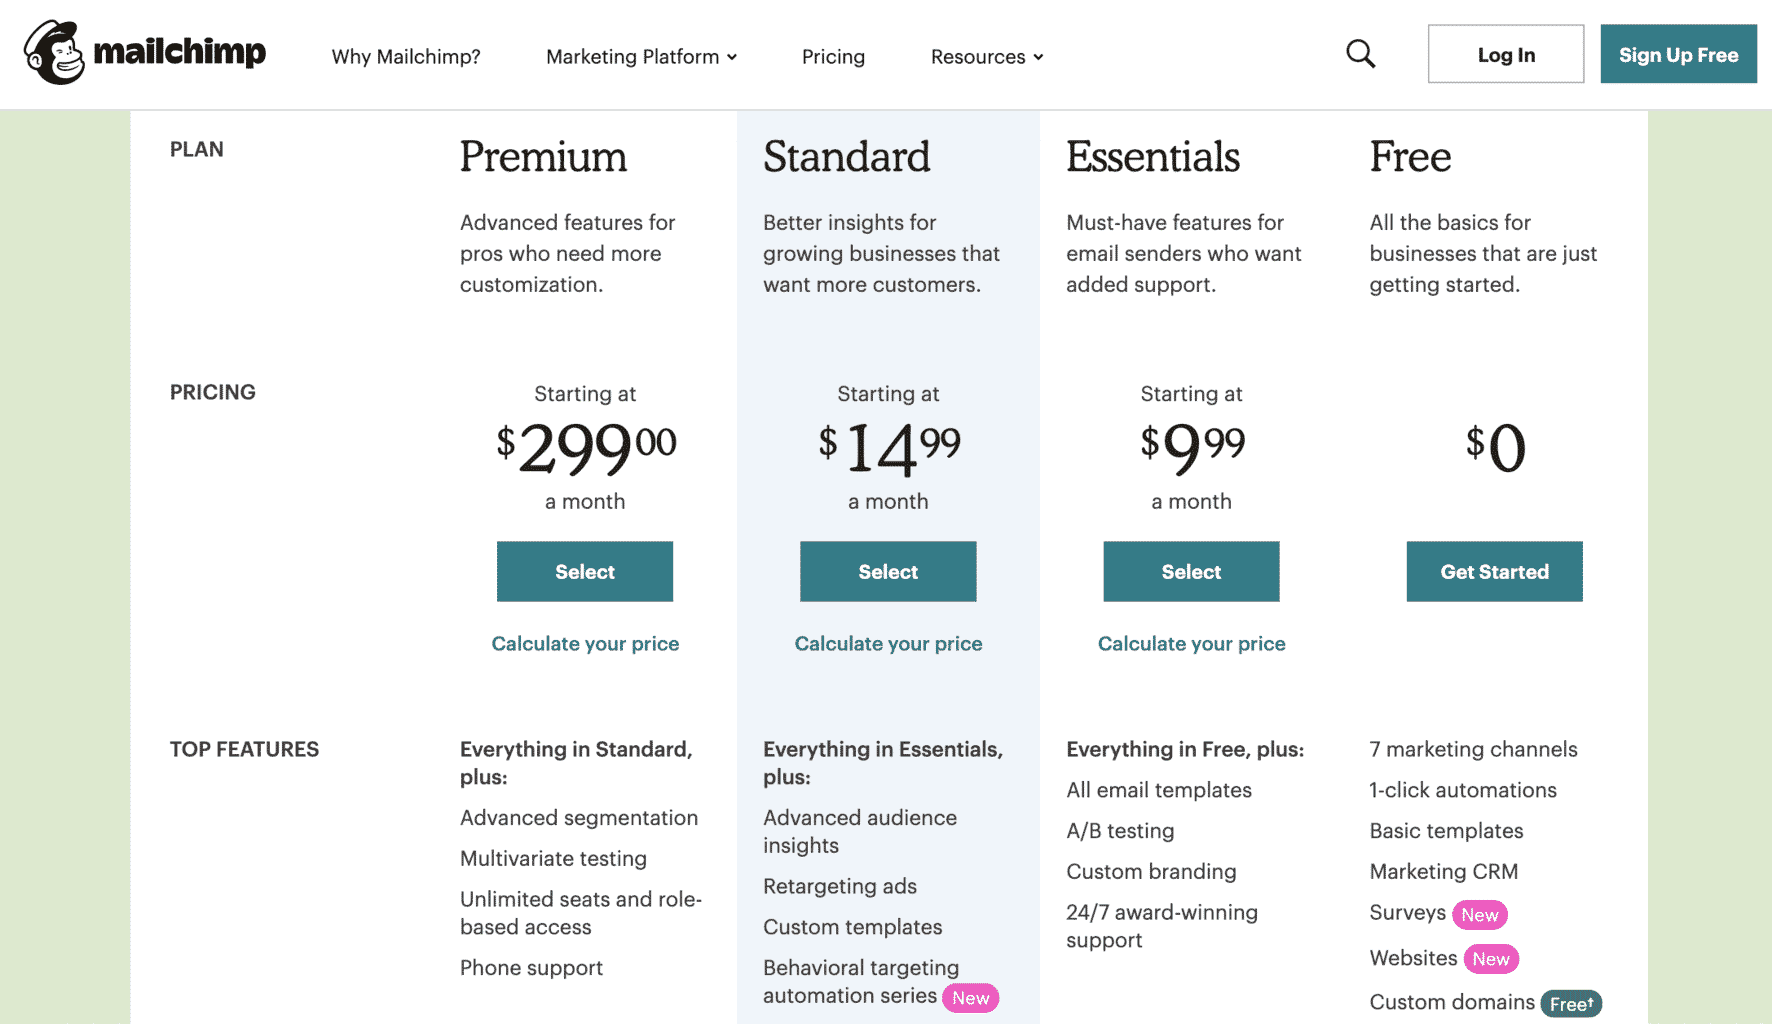 mailchimp functionality by price tier